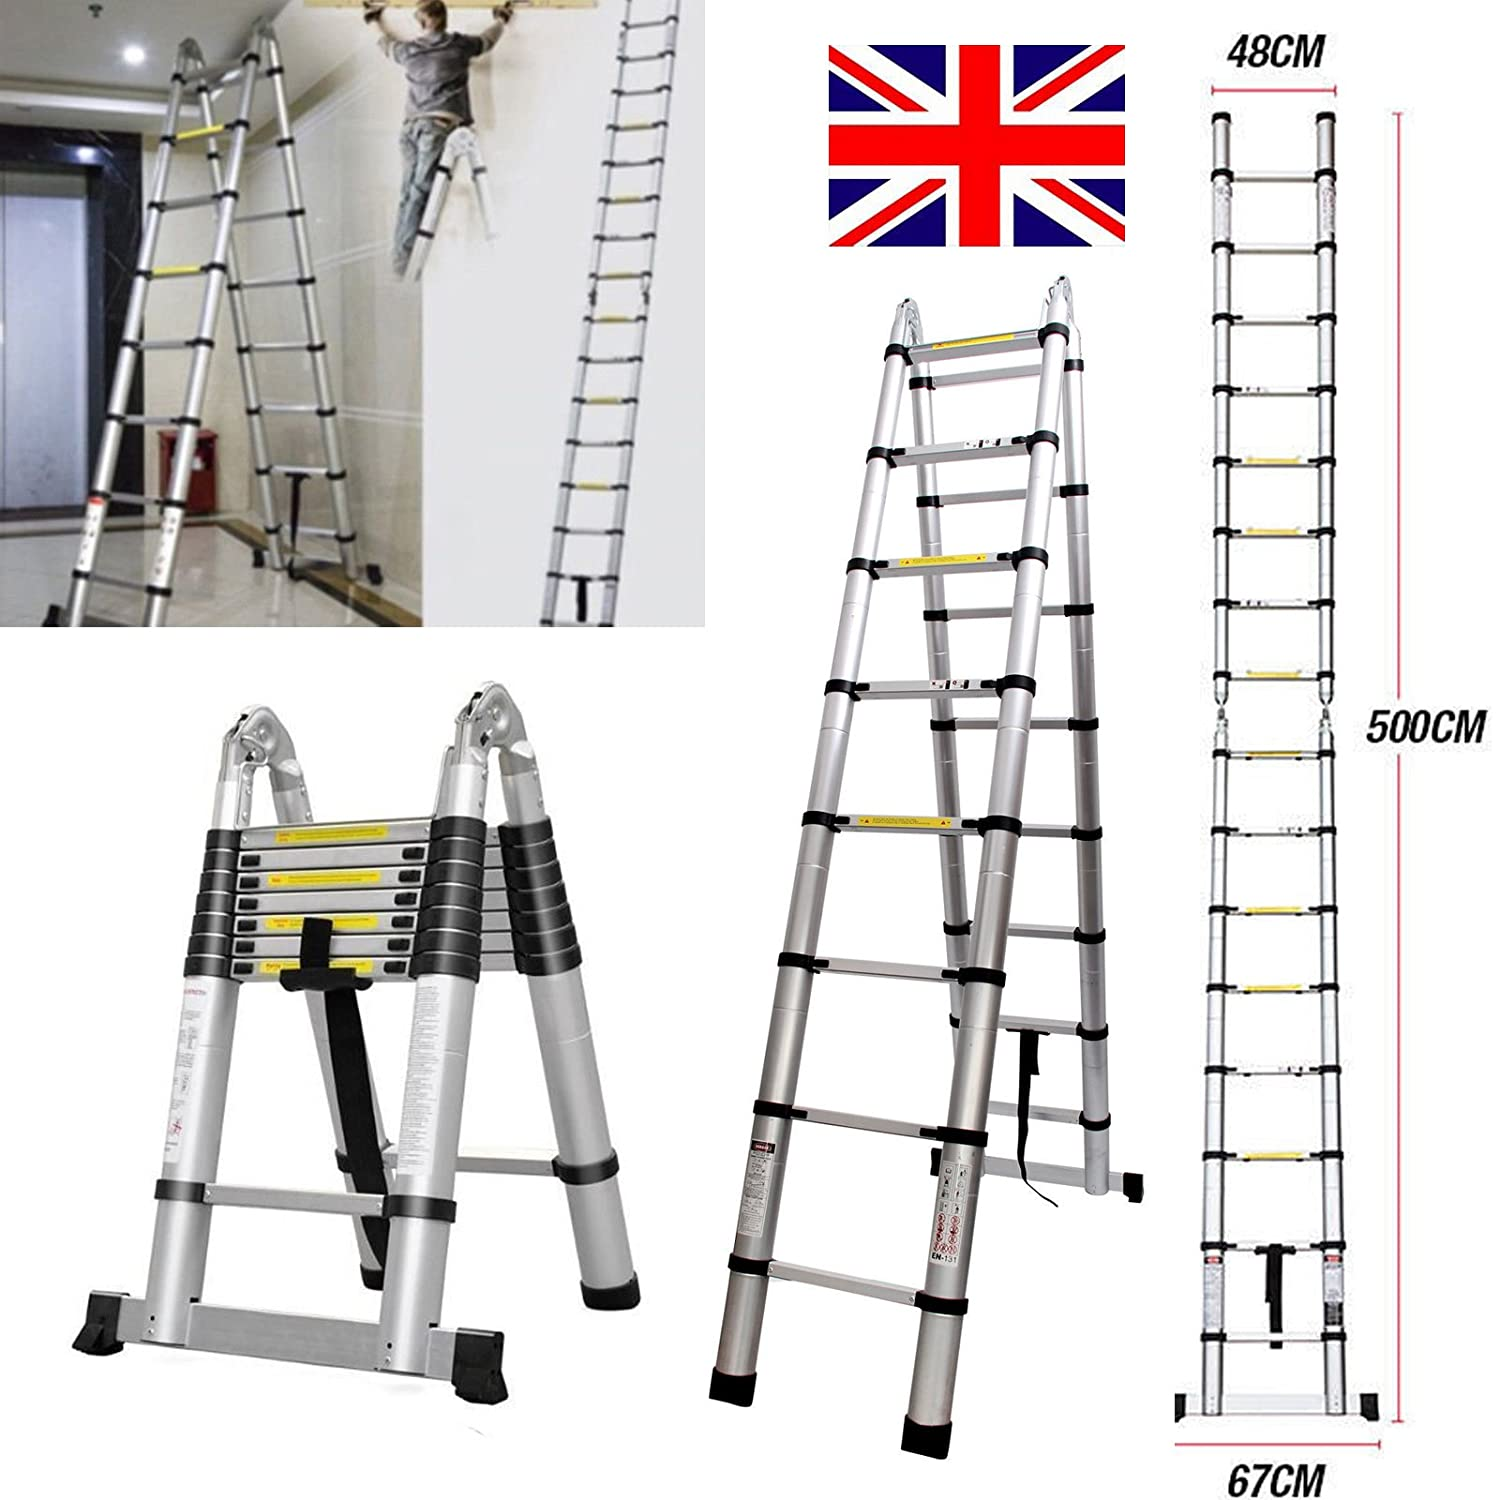 2018 New Design Aluminum 5m/16.4ft Folding Telescopic Ladder Extendable 16 Steps, Can Be Straight or A-Frame Ladder AutoBaBa